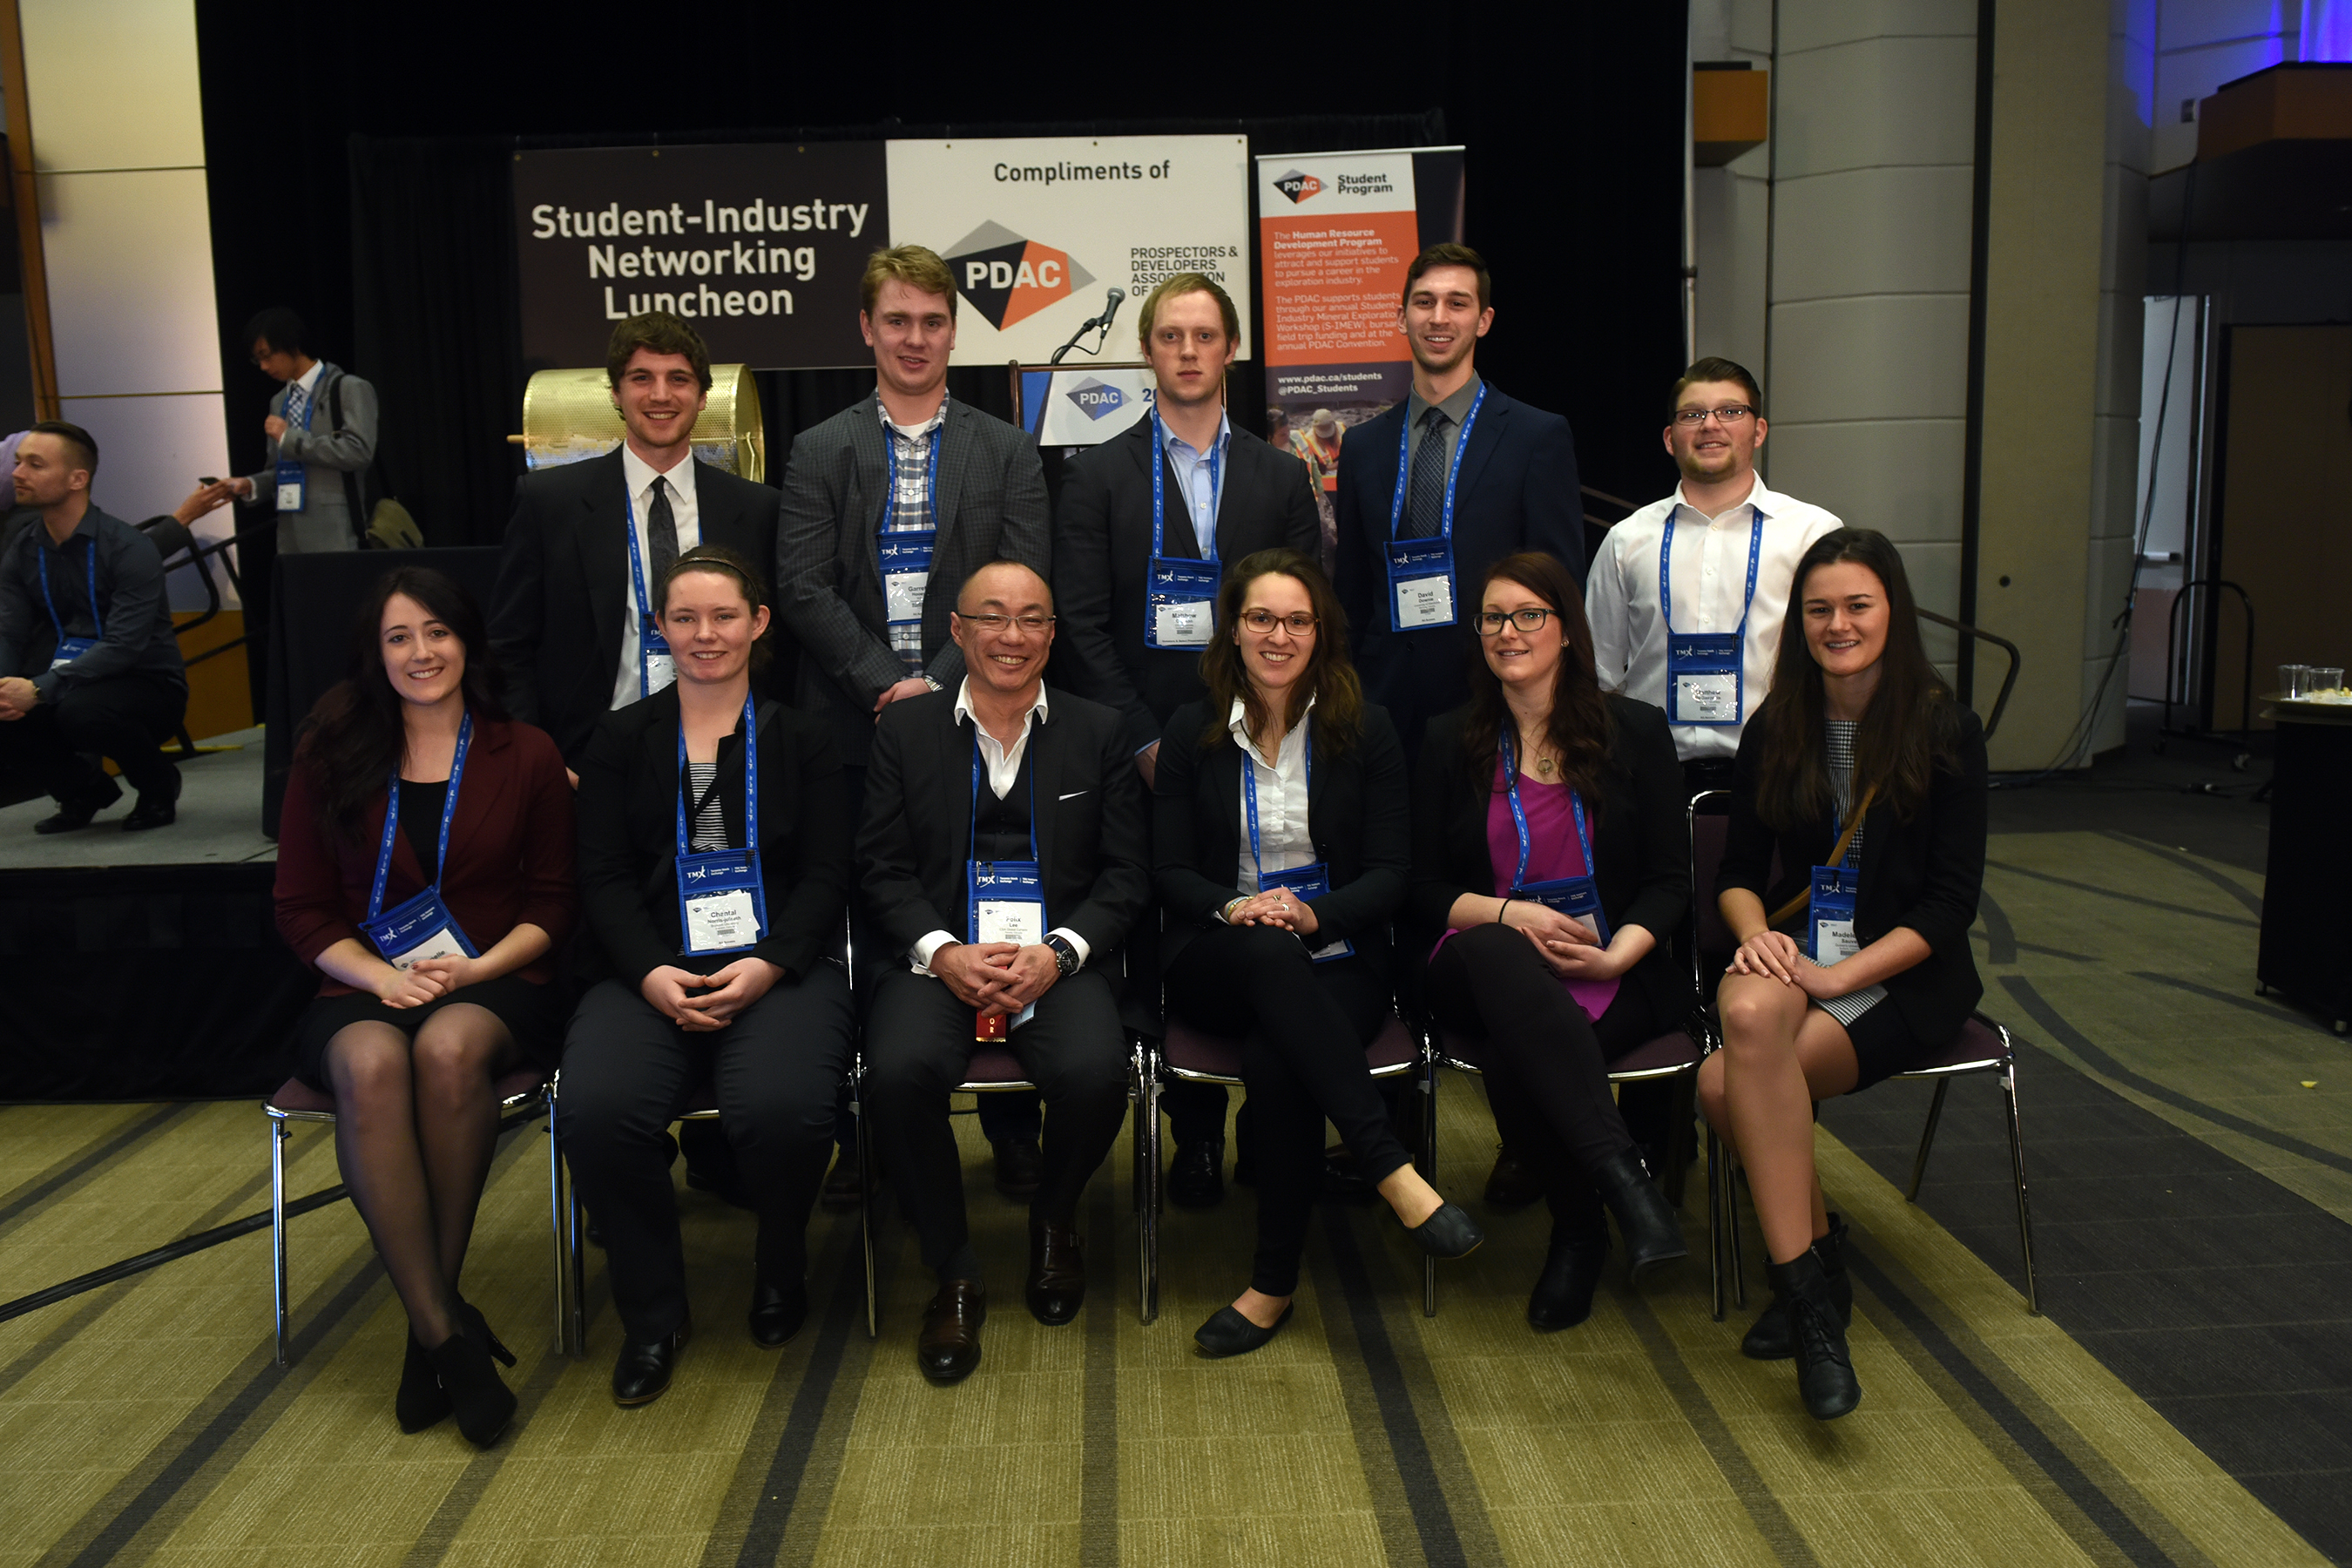 Student-Industry Networking Luncheon, Felix Lee, CSA Global Canada et al